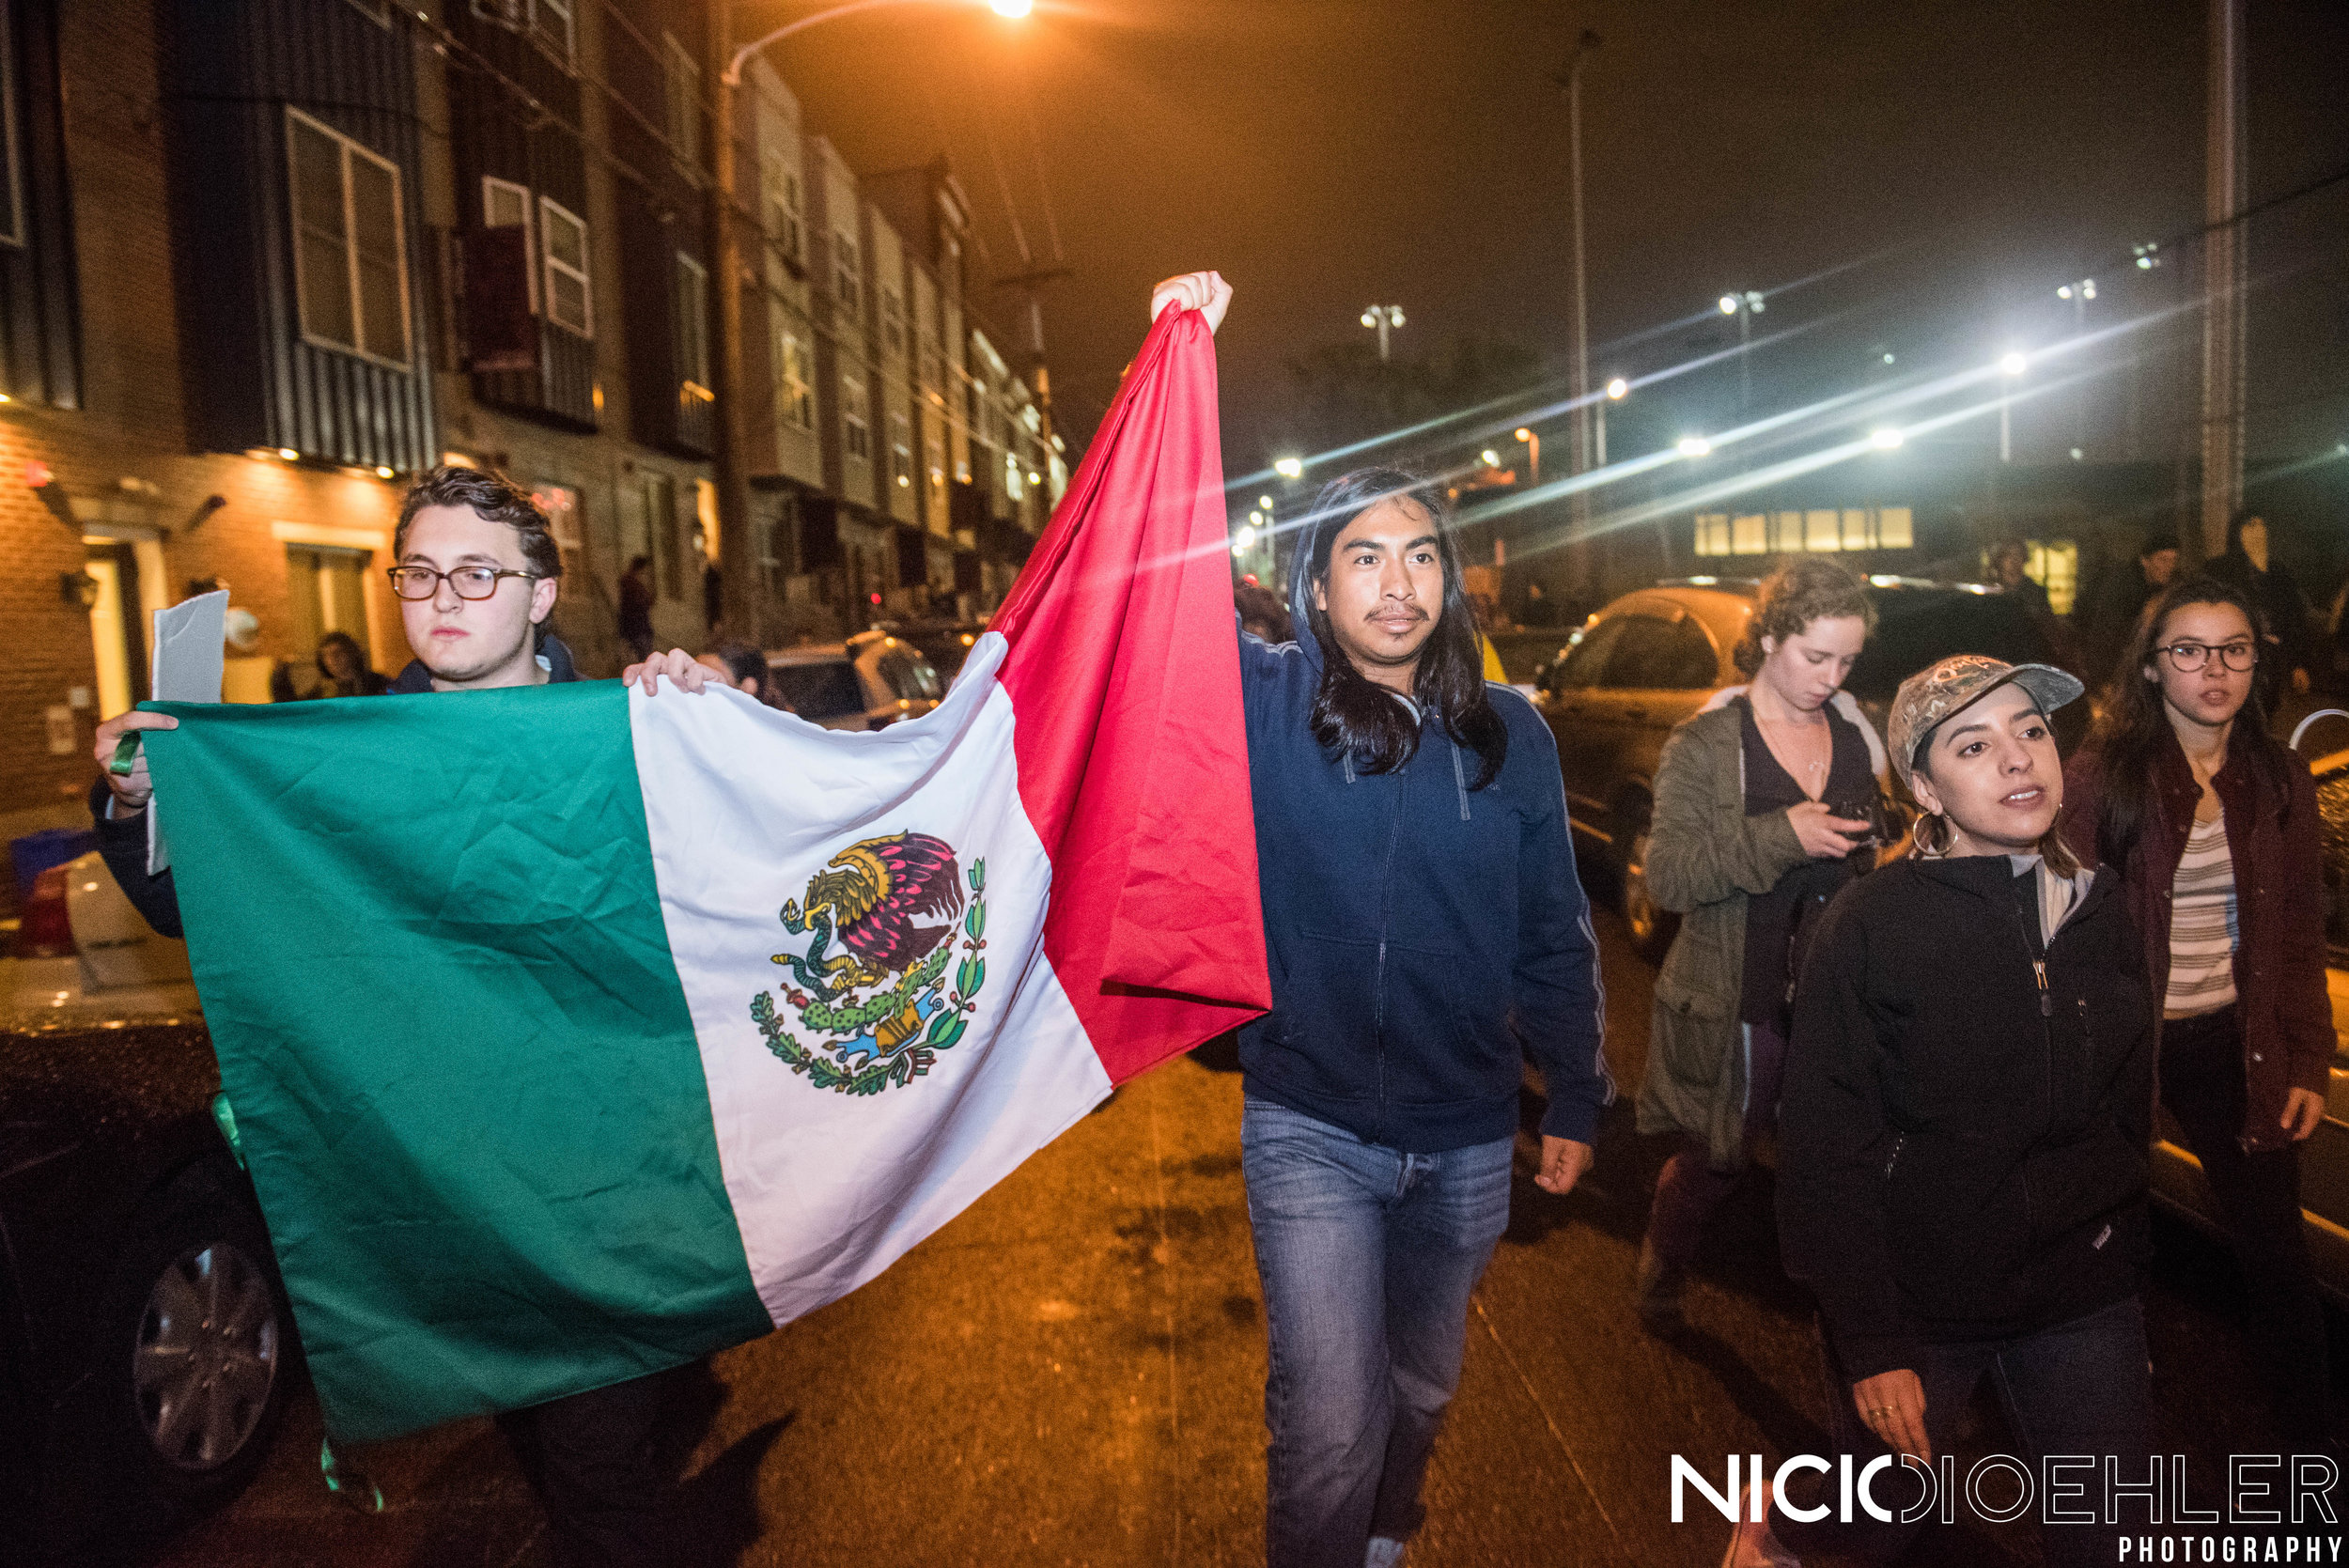 Mexican flag being held up by protesters on way back to Center City Philadelphia.